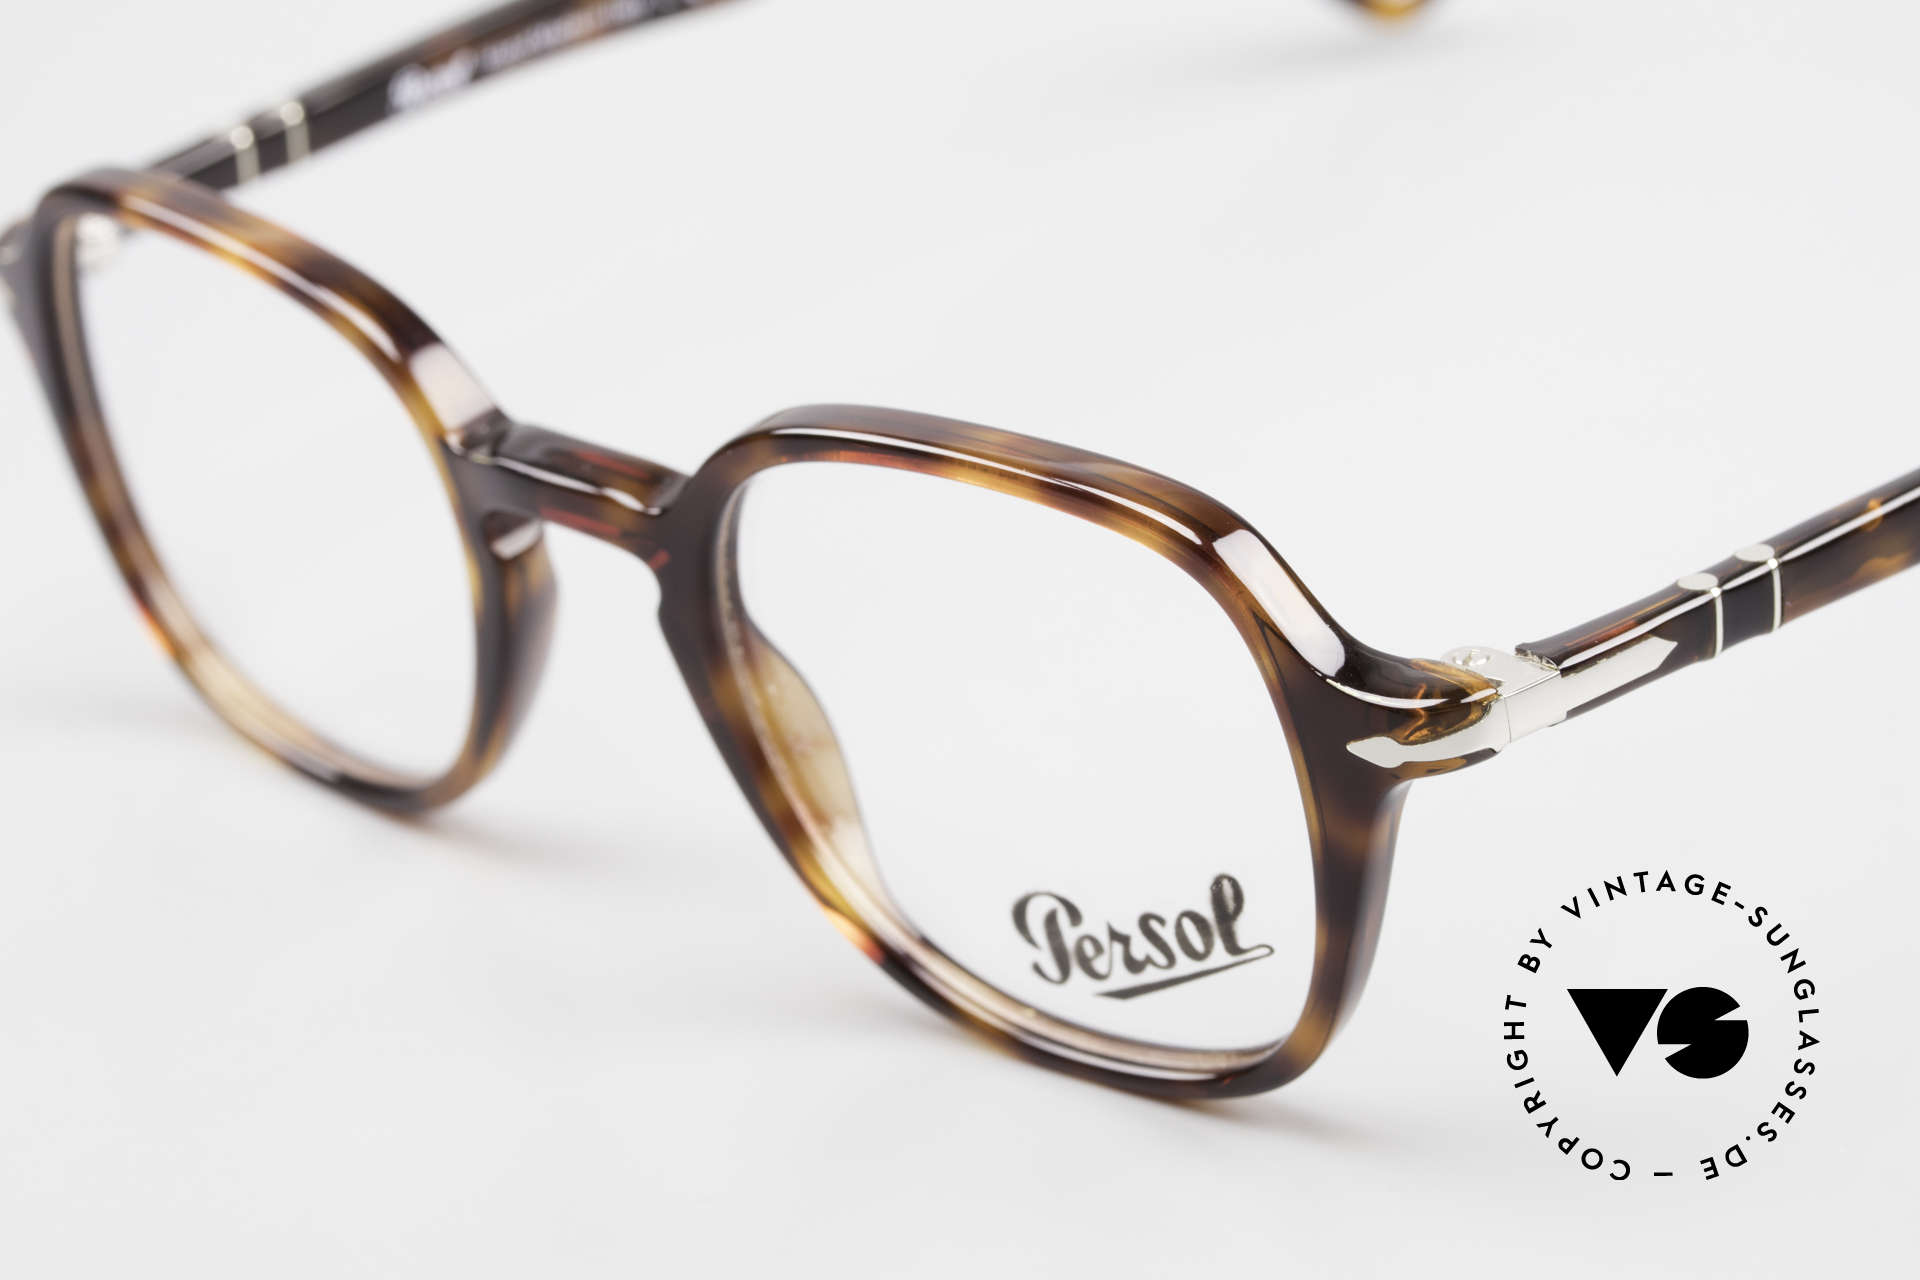 Persol 3142 Square Panto Eyeglasses Unisex, unworn (like all our classic PERSOL eyeglasses), Made for Men and Women